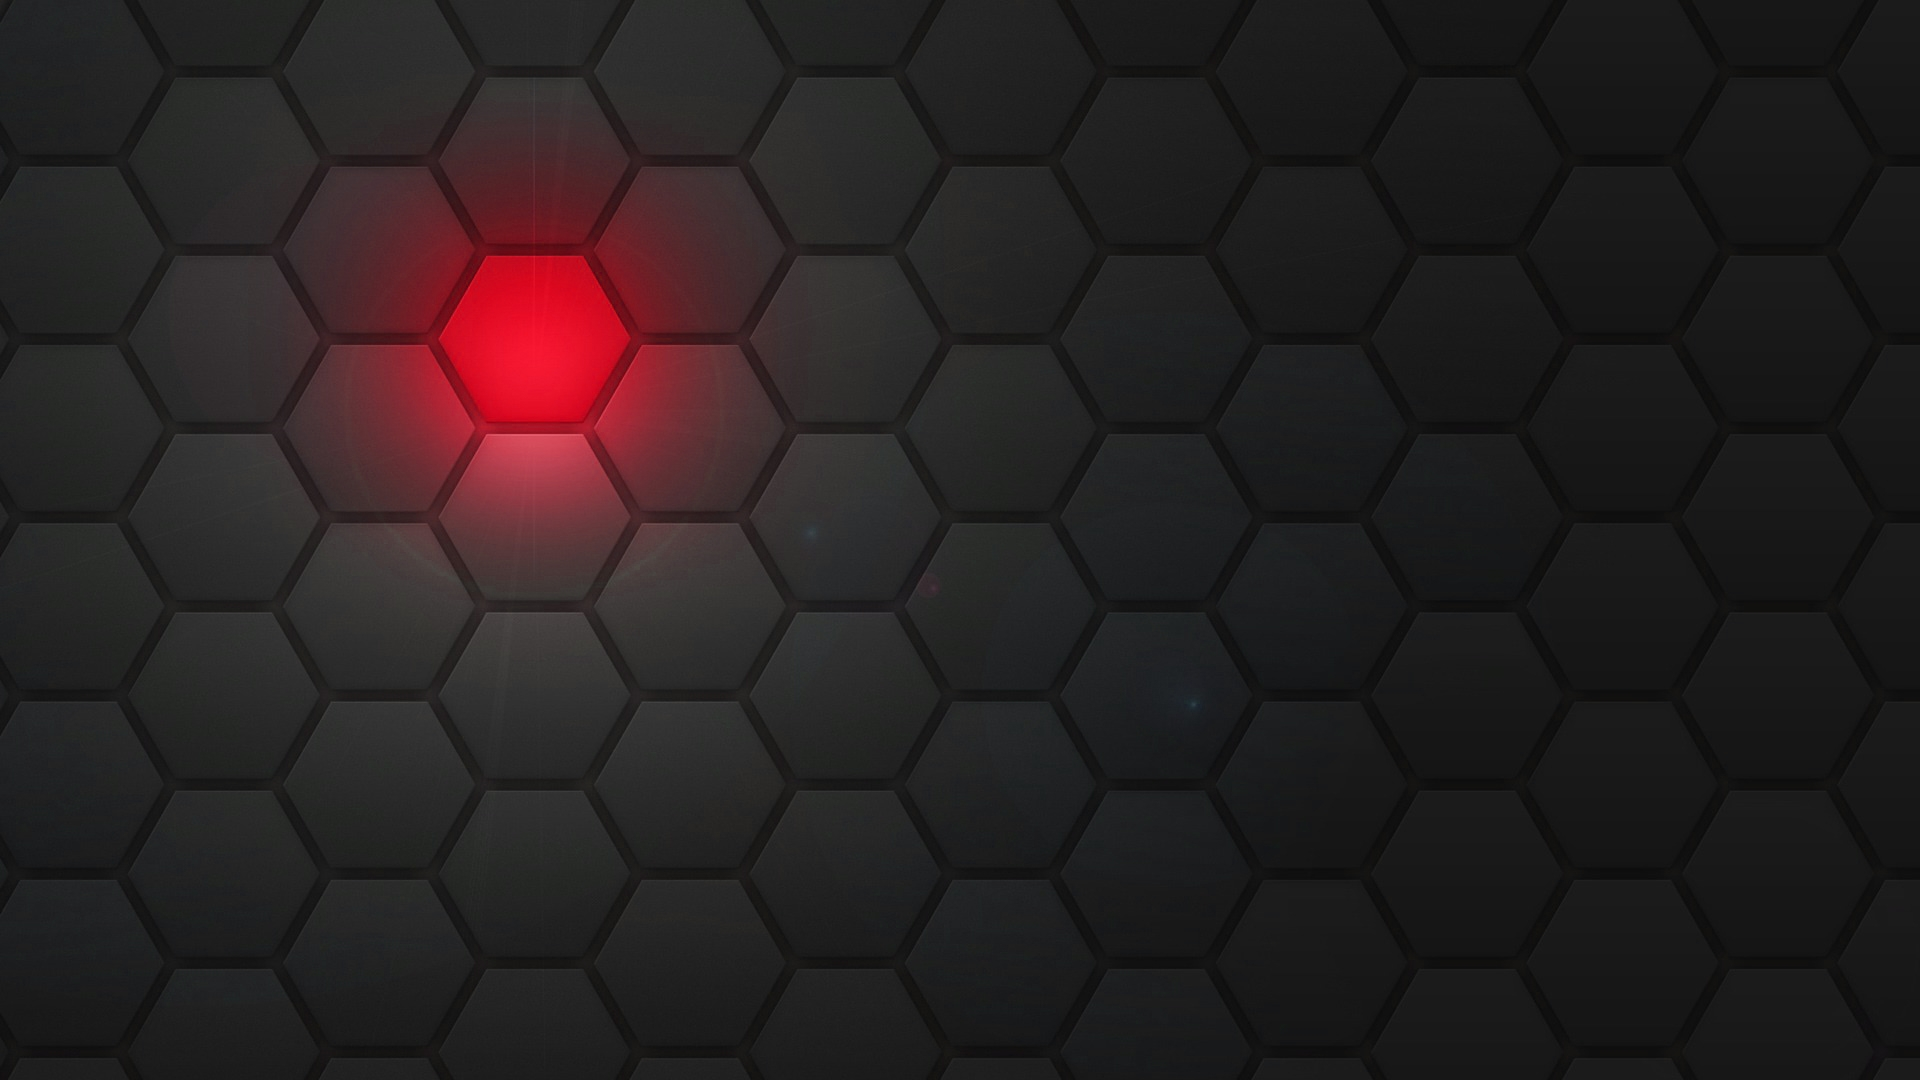 Mesh Wallpaper 10   1920 X 1080 stmednet 1920x1080